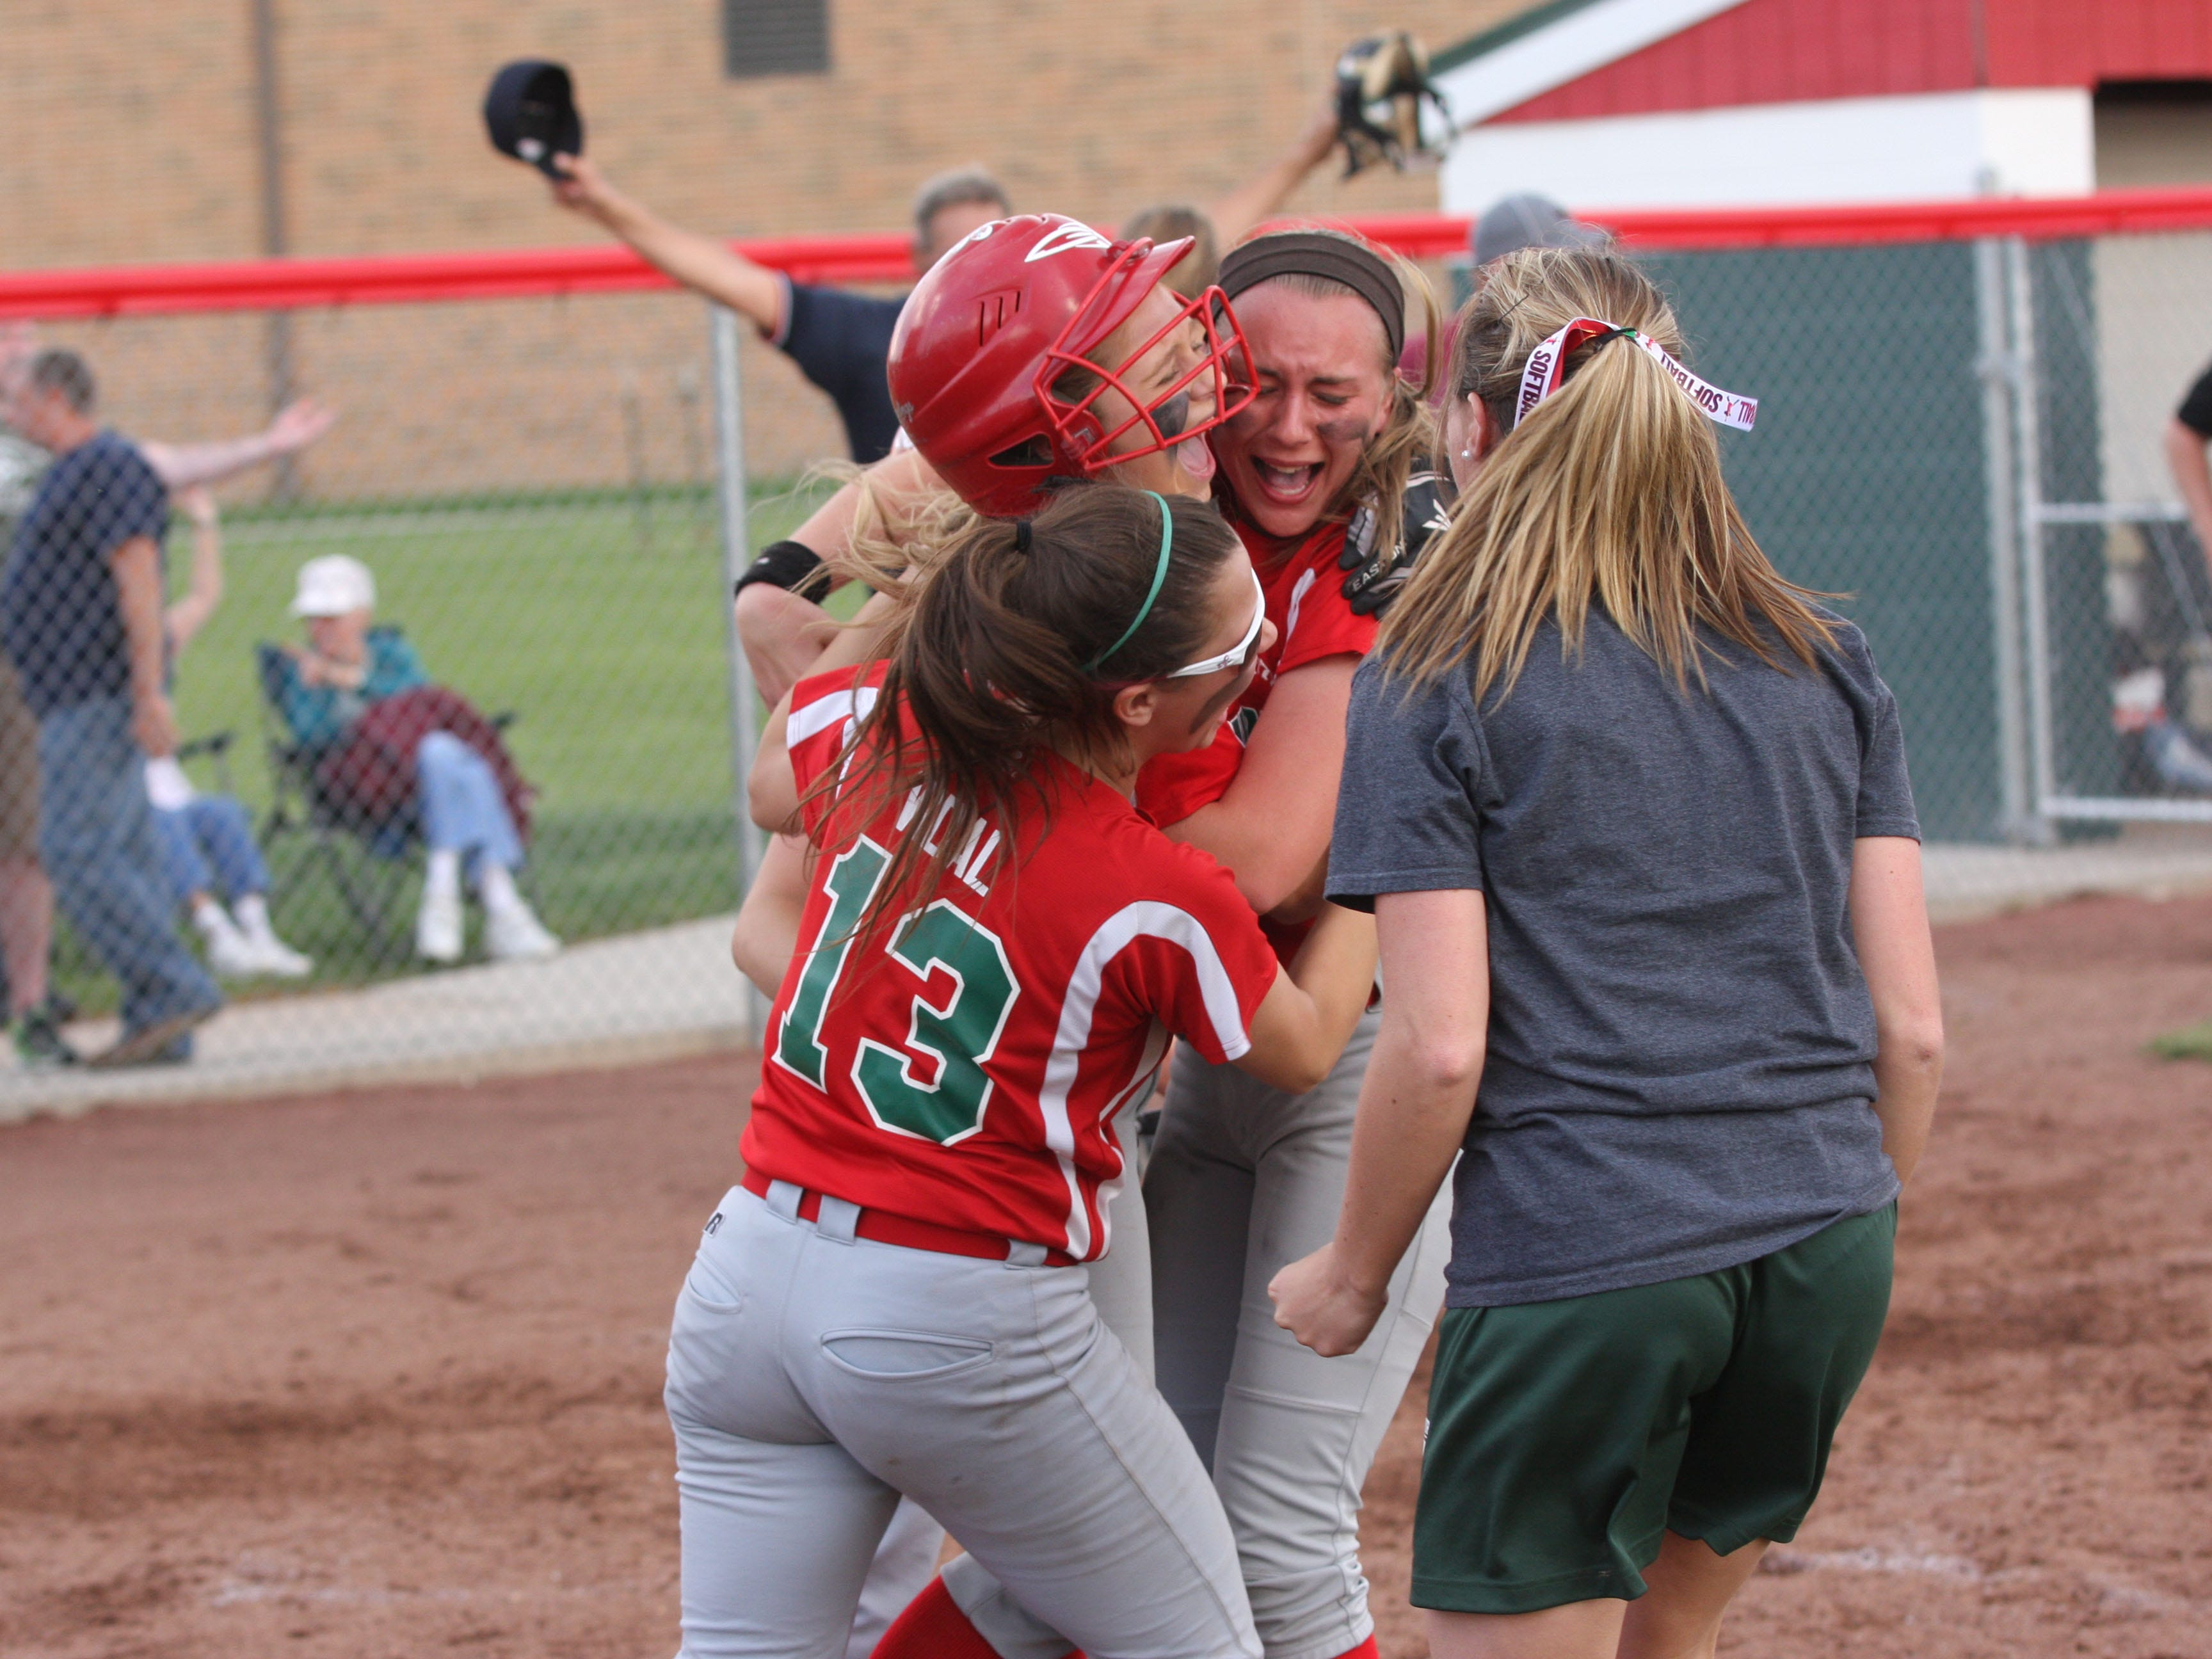 Oak Harbor's Seree Petersen (wearing helmet) is greeted by her teammates after scoring the game-tying run on a close play at the plate. The Rockets defeated Willard 2-1 in 12 innings in the sectional tournament at Oak Harbor.